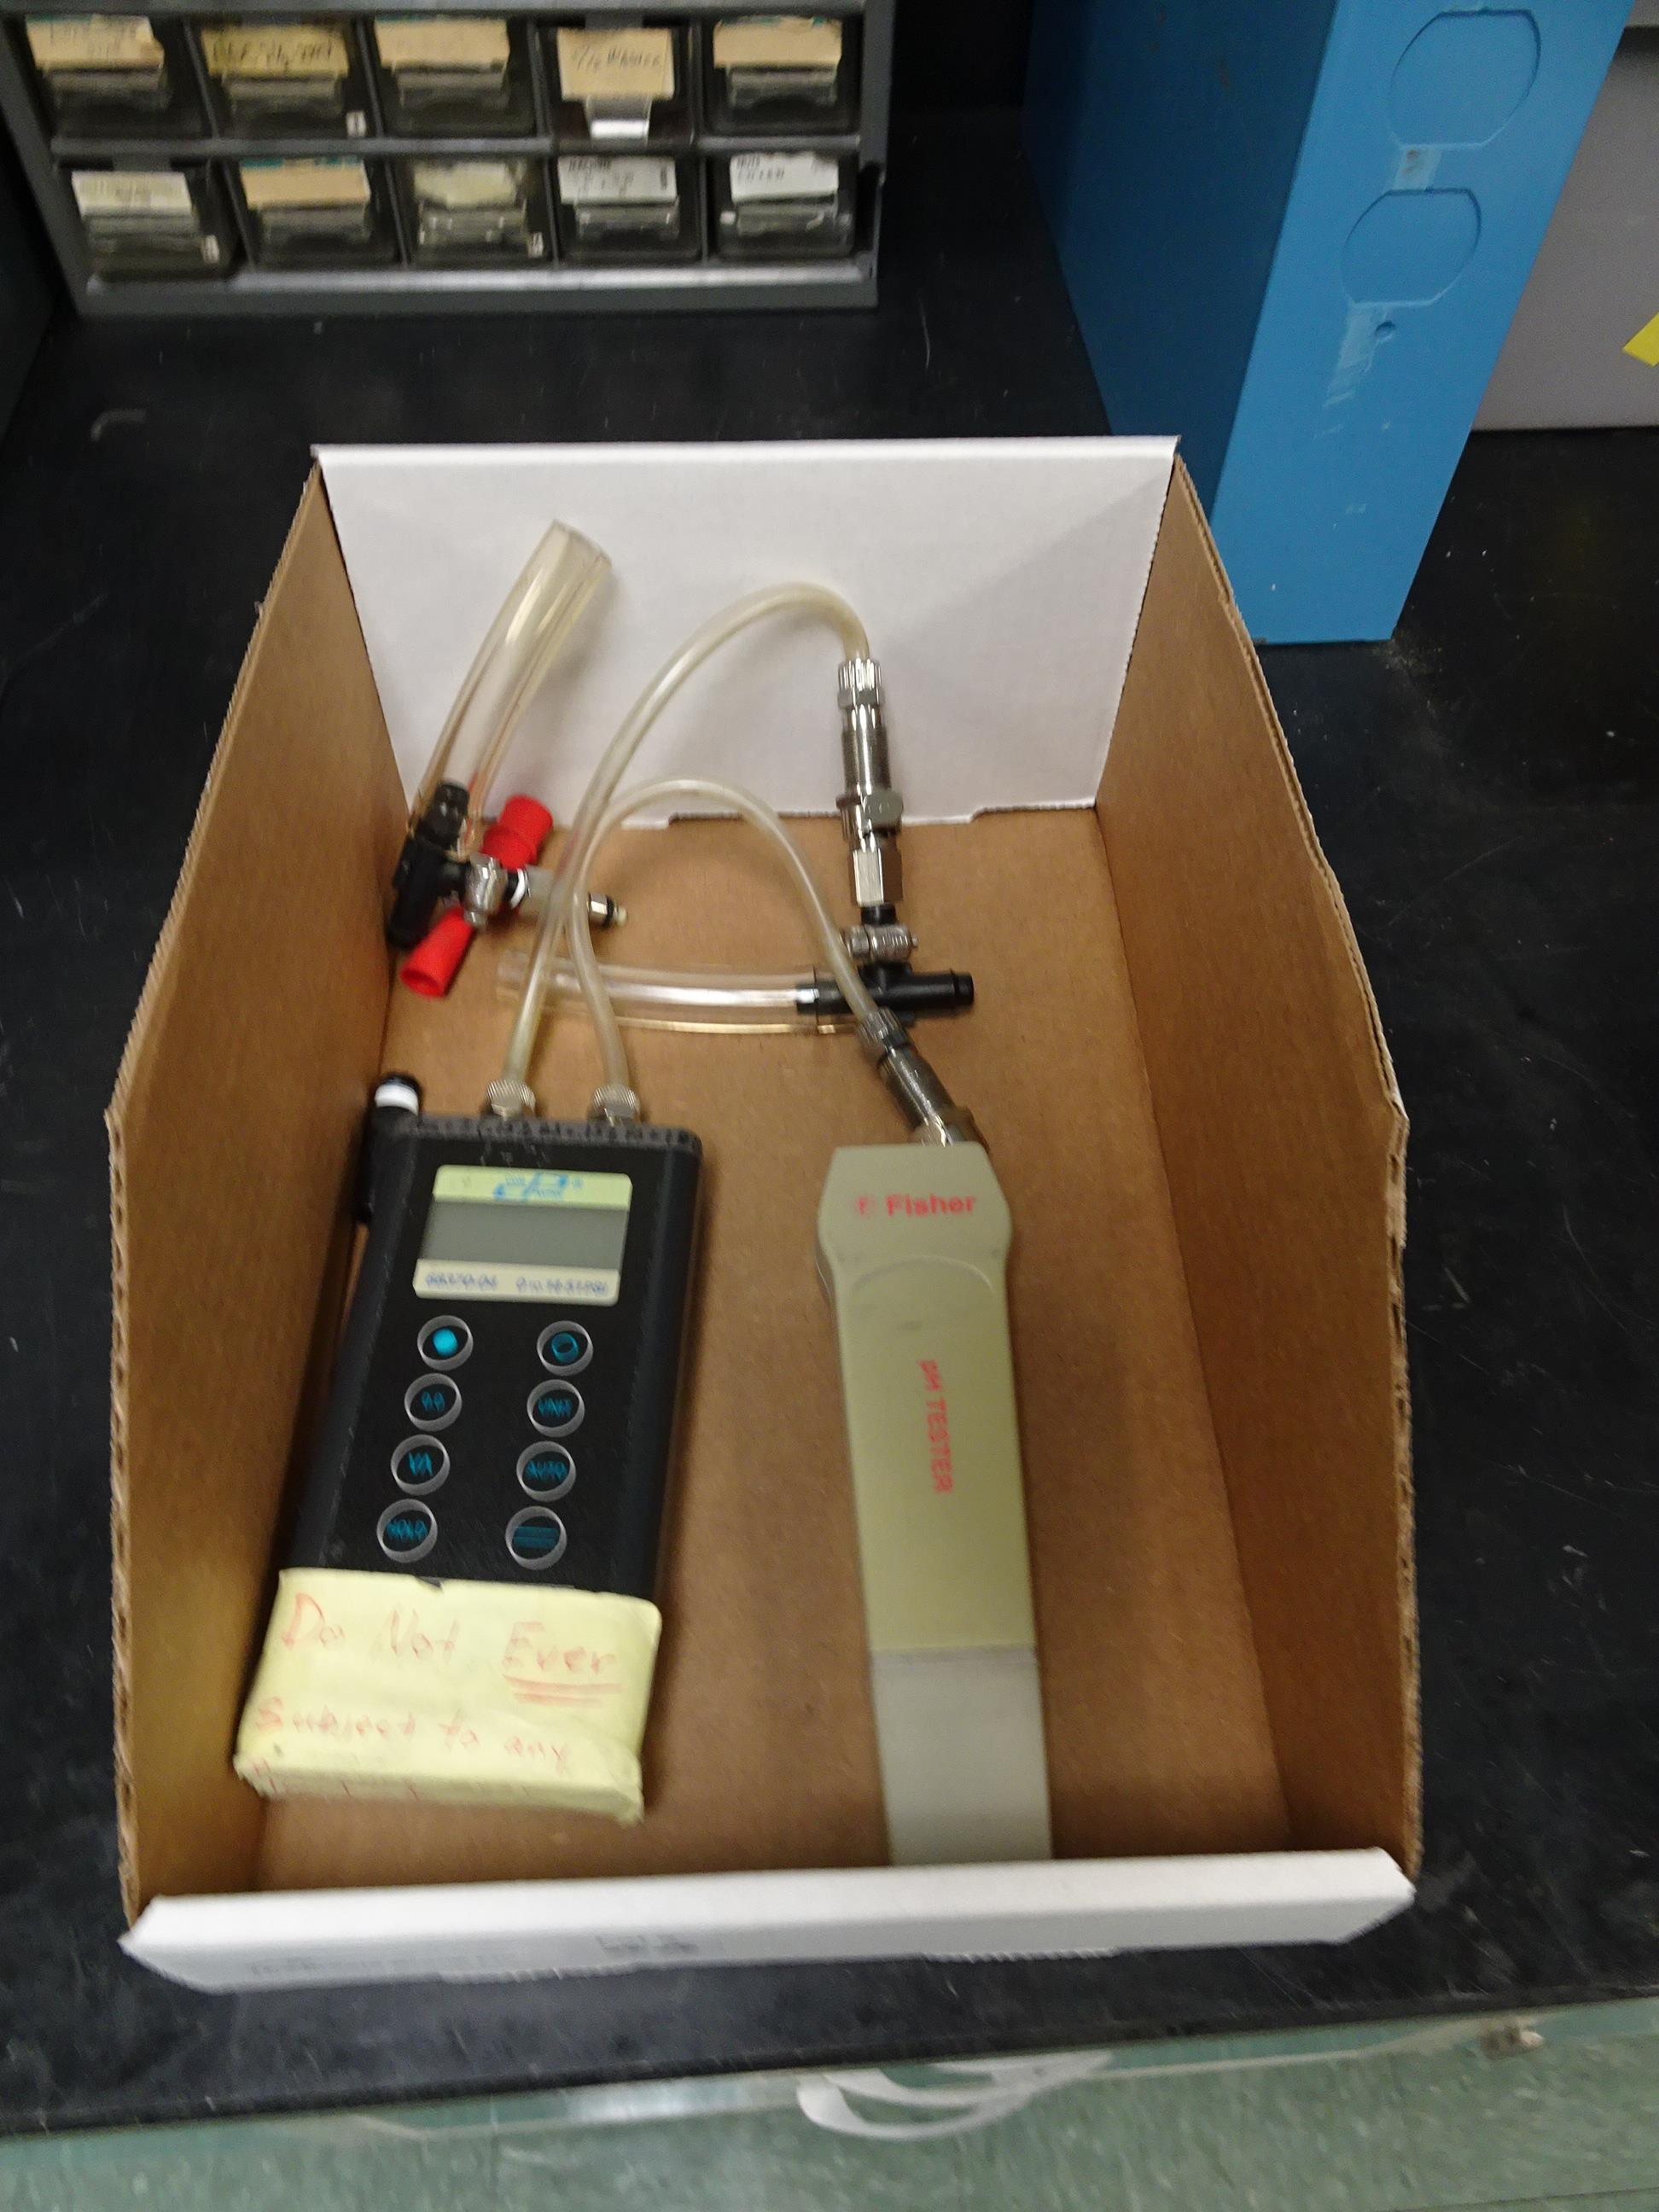 Lot 66 - Cole Parmer Model 68370-04 0-14.51 PSI Portable Differential Gauge, (1)p Fisher Portable pH Tester